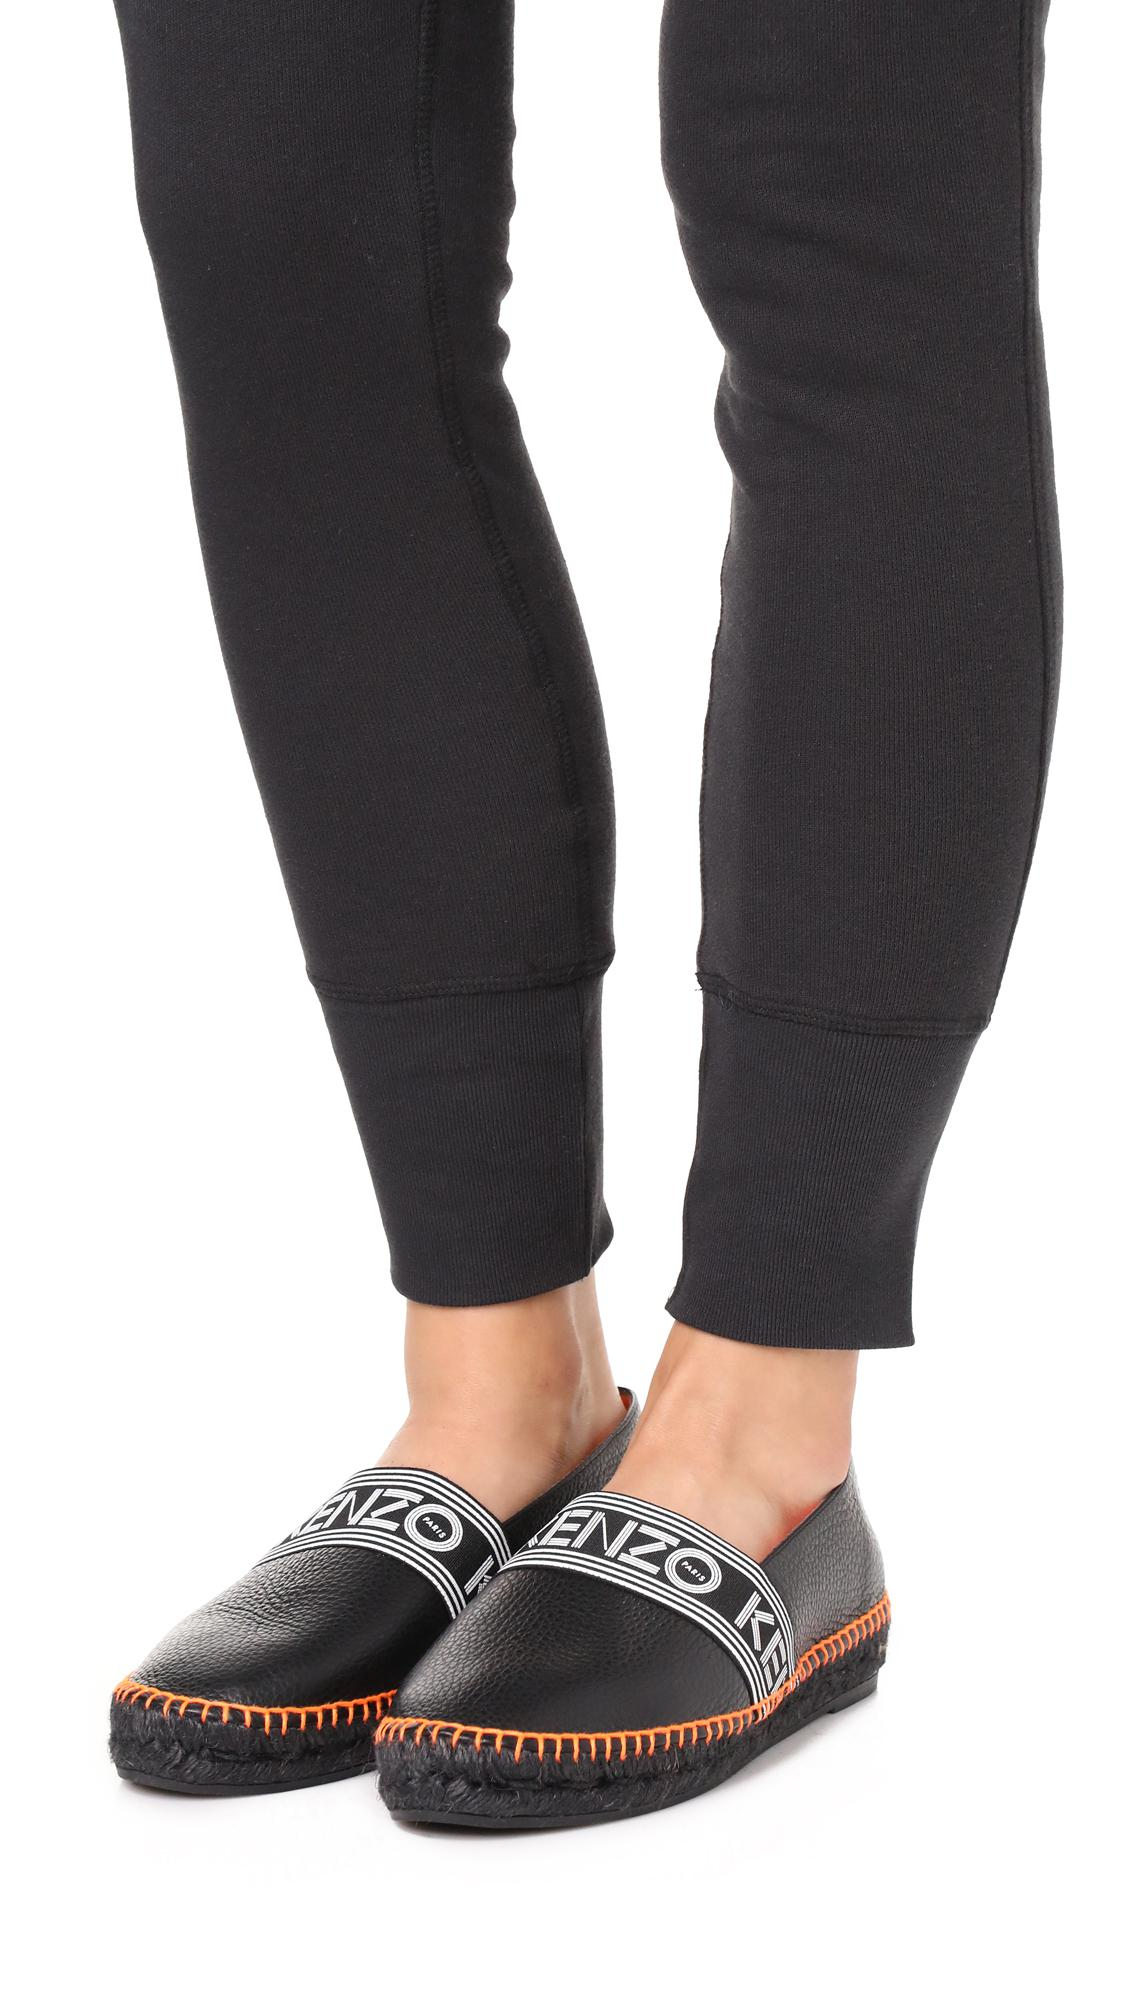 5192fabb0 Gallery. Previously sold at: Shopbop · Women's Kenzo Espadrilles